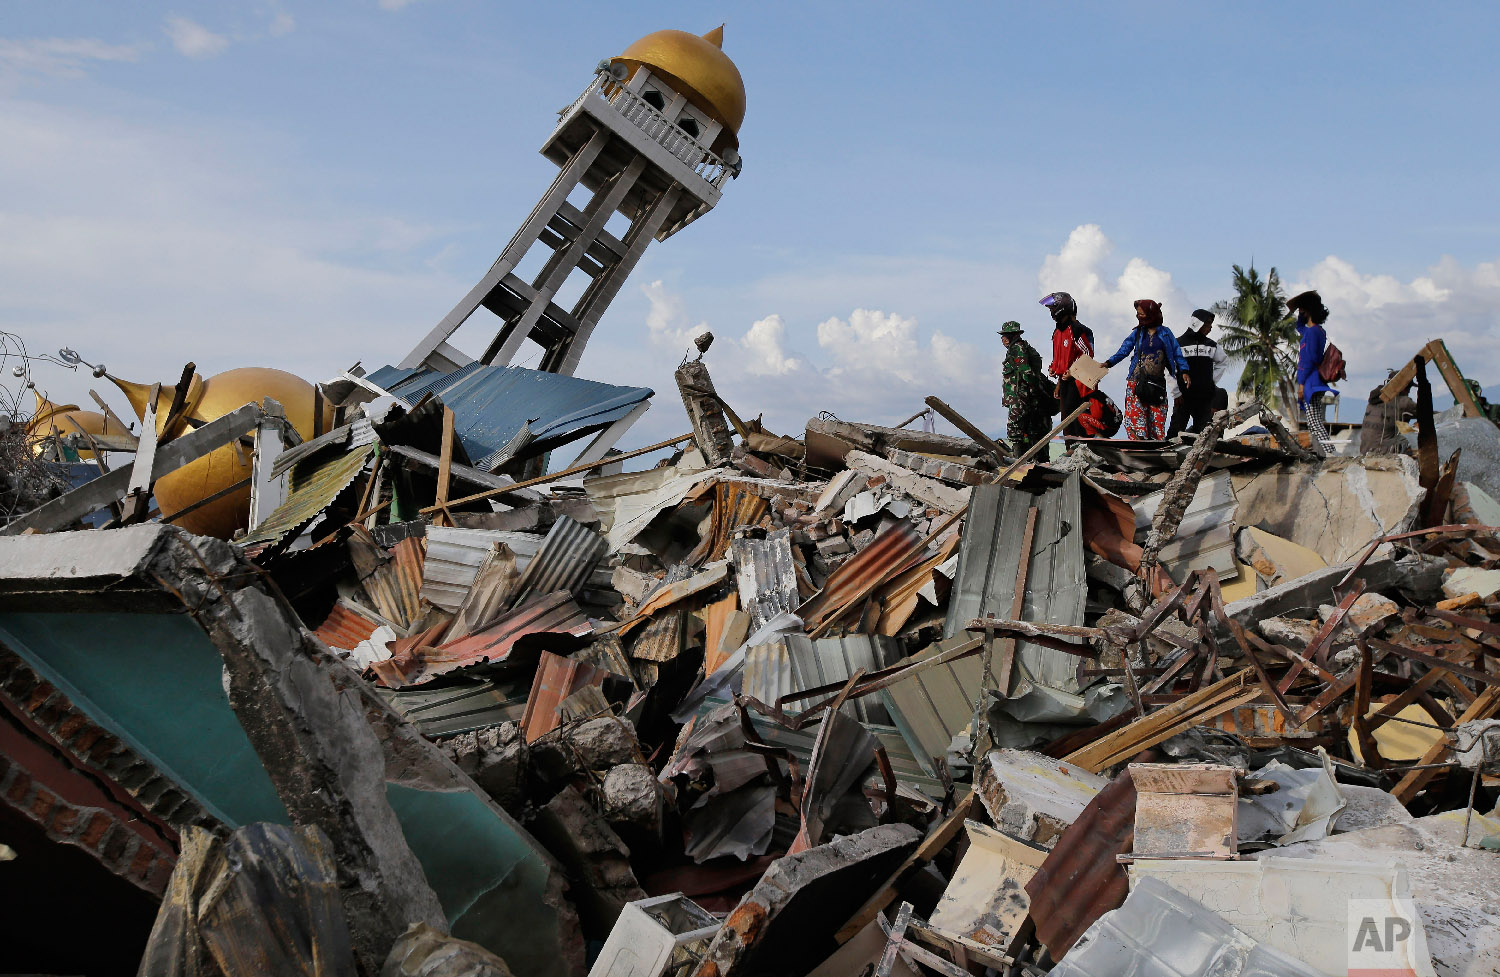 Rescuers and villagers wait for news for their missing loved one's as recovery efforts continue after liquefaction hit the neighborhood of Balaroa in Palu, Central Sulawesi, Indonesia, on Oct. 6, 2018. (AP Photo/Aaron Favila)